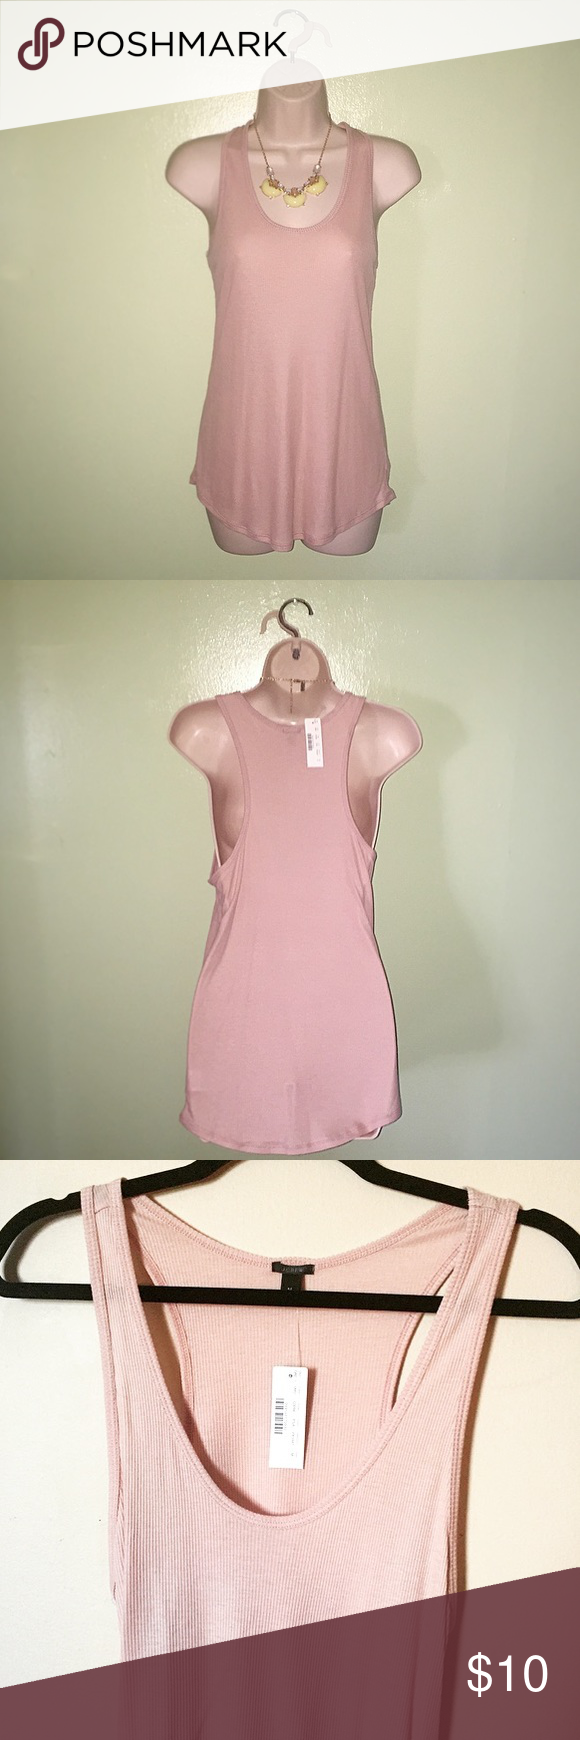 💕▶️🆕JCREW Ribbed Racerback Tank Top🆕◀️💕 New with tags JCREW ribbed racerback tank top, size medium. This top has a slightly loose, longer silhouette with slinky rubbed fabric and a racerback detail.   Features:  •Blush pink •Slightly loose fit •Body length: 26 1/4 inches •MSRP $29.50 J. Crew Tops Tank Tops